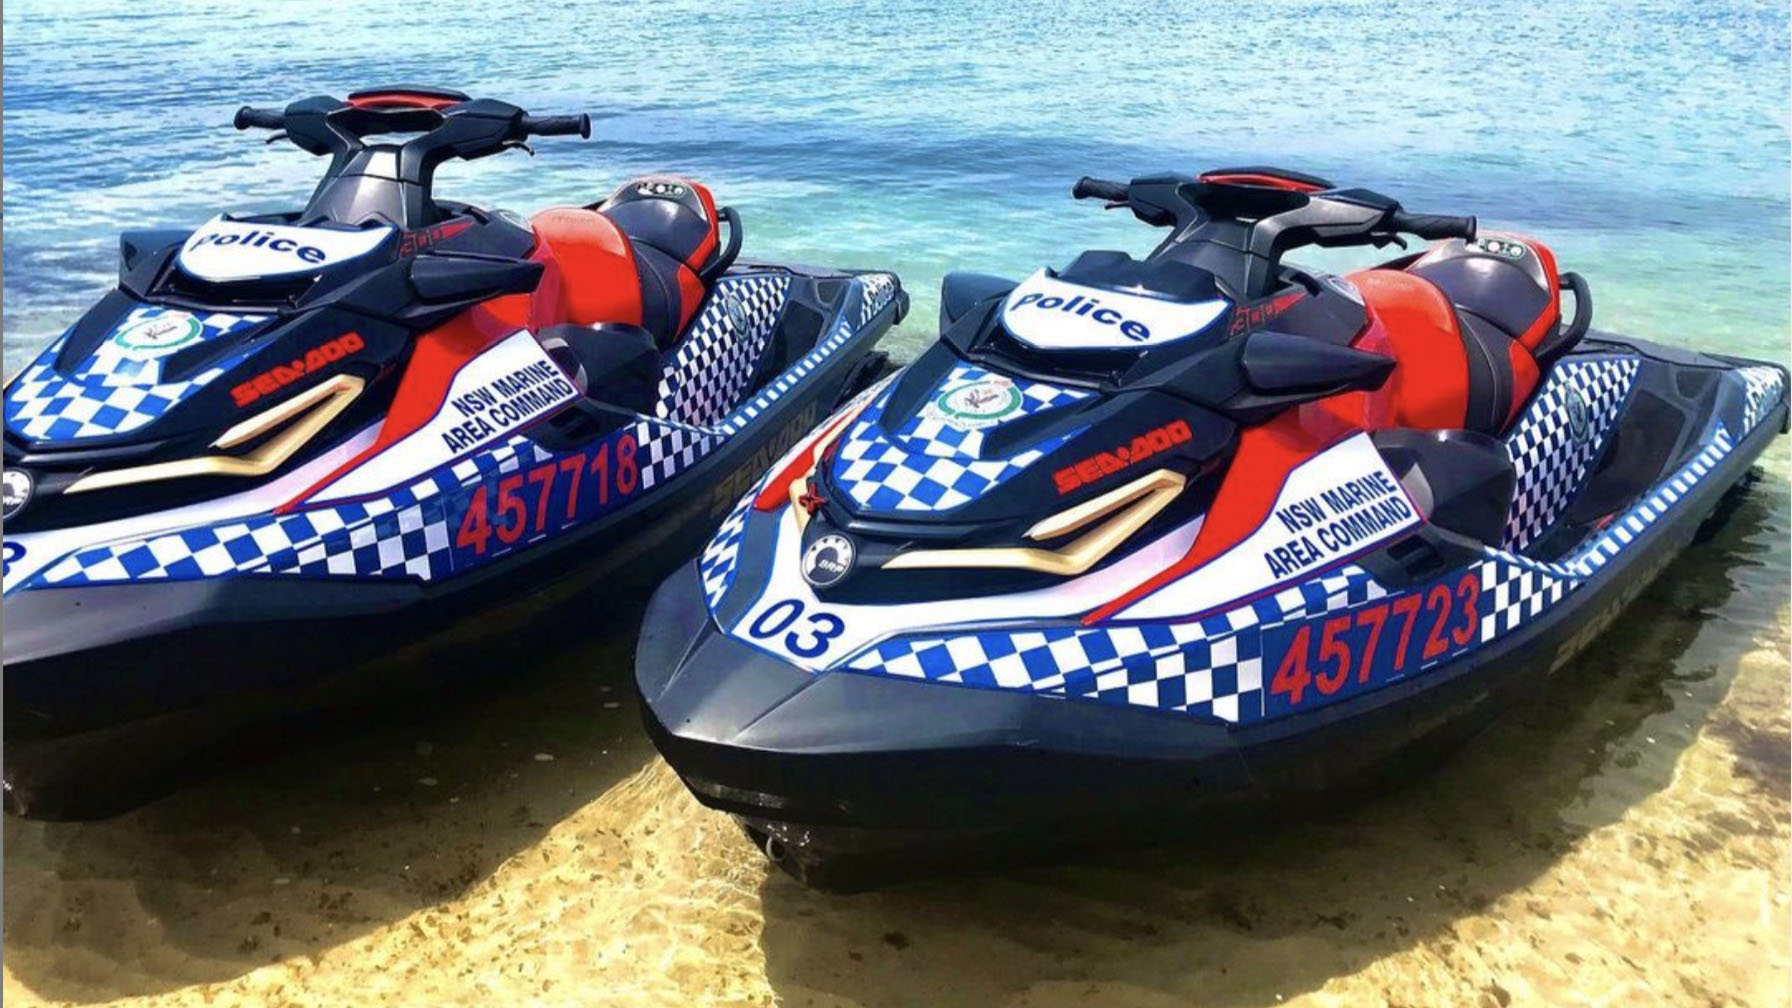 Jet Ski safety: UNSW studies impact of COVID-19 travel restrictions